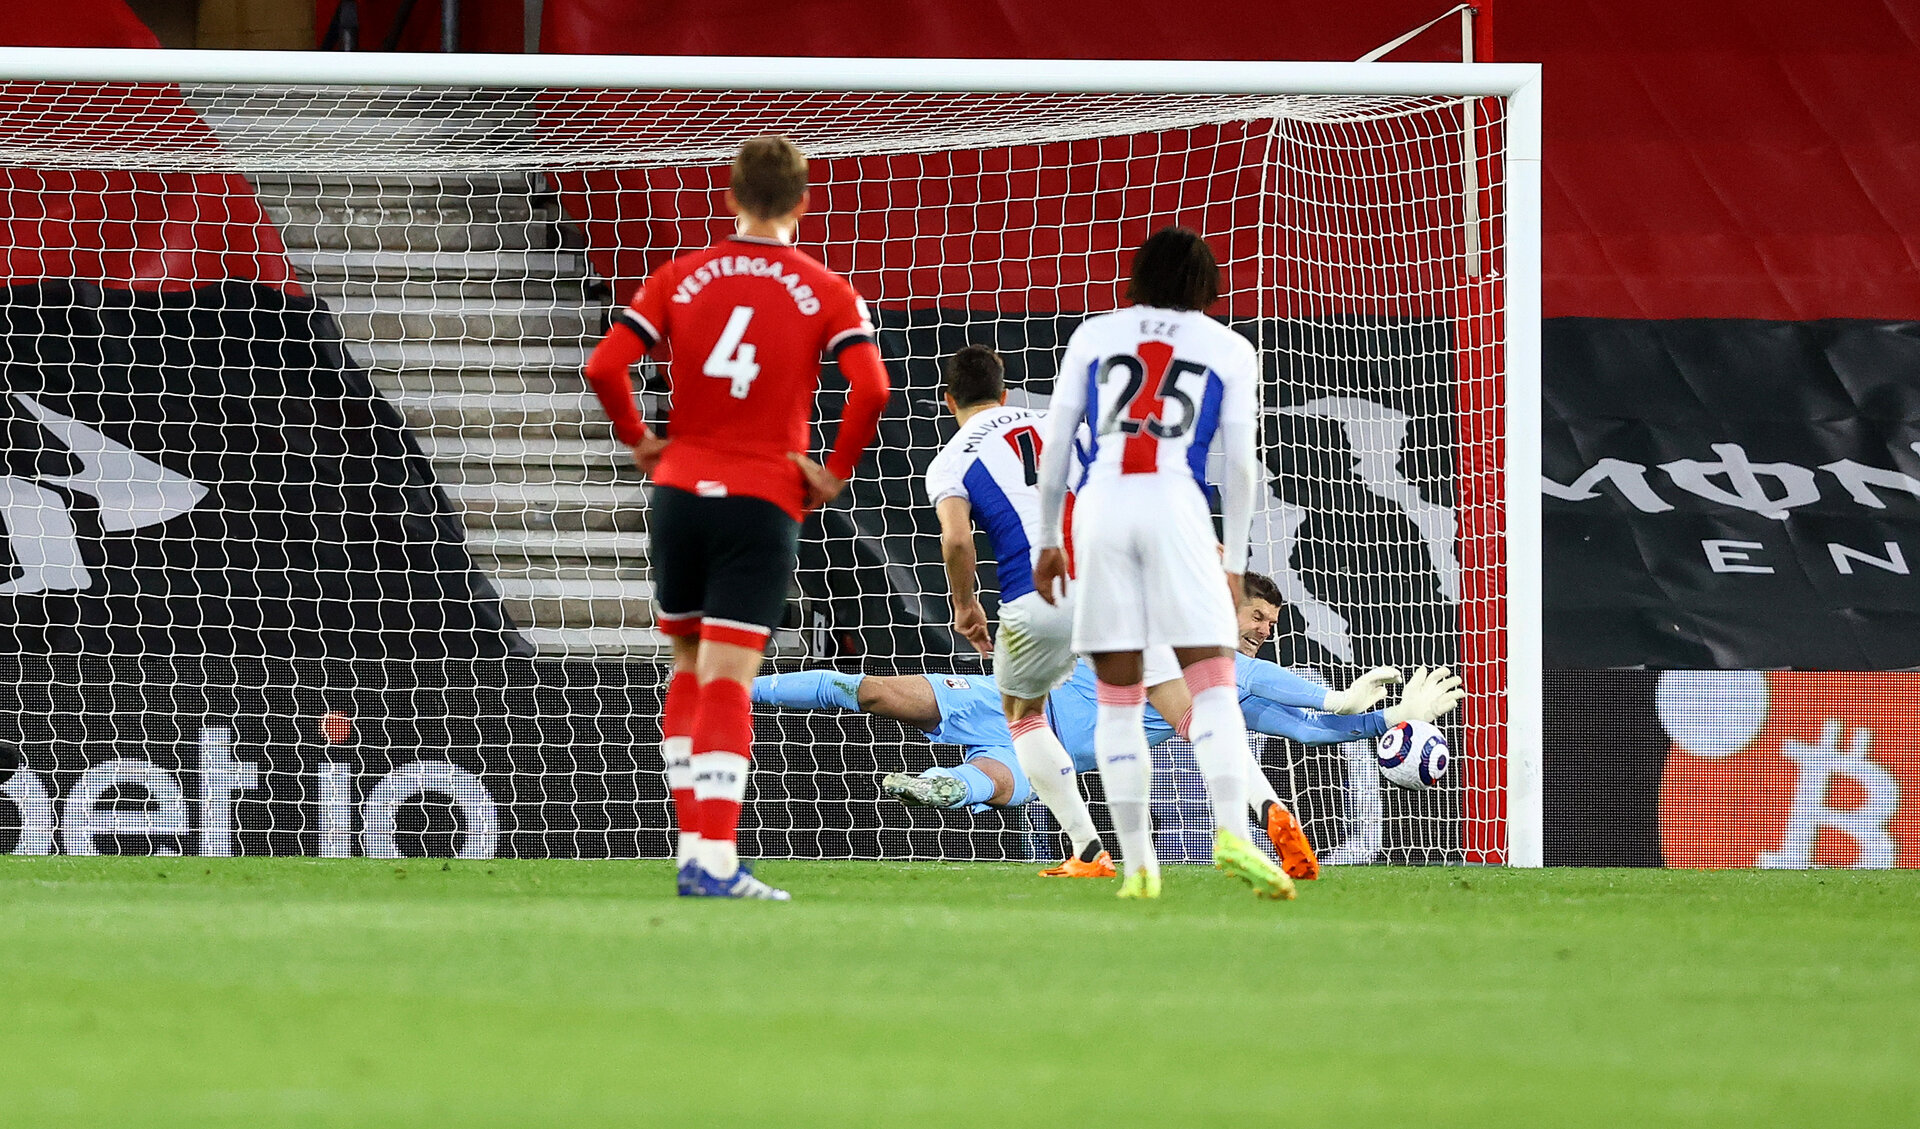 SOUTHAMPTON, ENGLAND - MAY 11: Fraser Forster of Southampton saves a penalty from Luka Milivojevic of Crystal Palace during the Premier League match between Southampton and Crystal Palace at St Mary's Stadium on May 11, 2021 in Southampton, England. Sporting stadiums around the UK remain under strict restrictions due to the Coronavirus Pandemic as Government social distancing laws prohibit fans inside venues resulting in games being played behind closed doors.  (Photo by Matt Watson/Southampton FC via Getty Images)